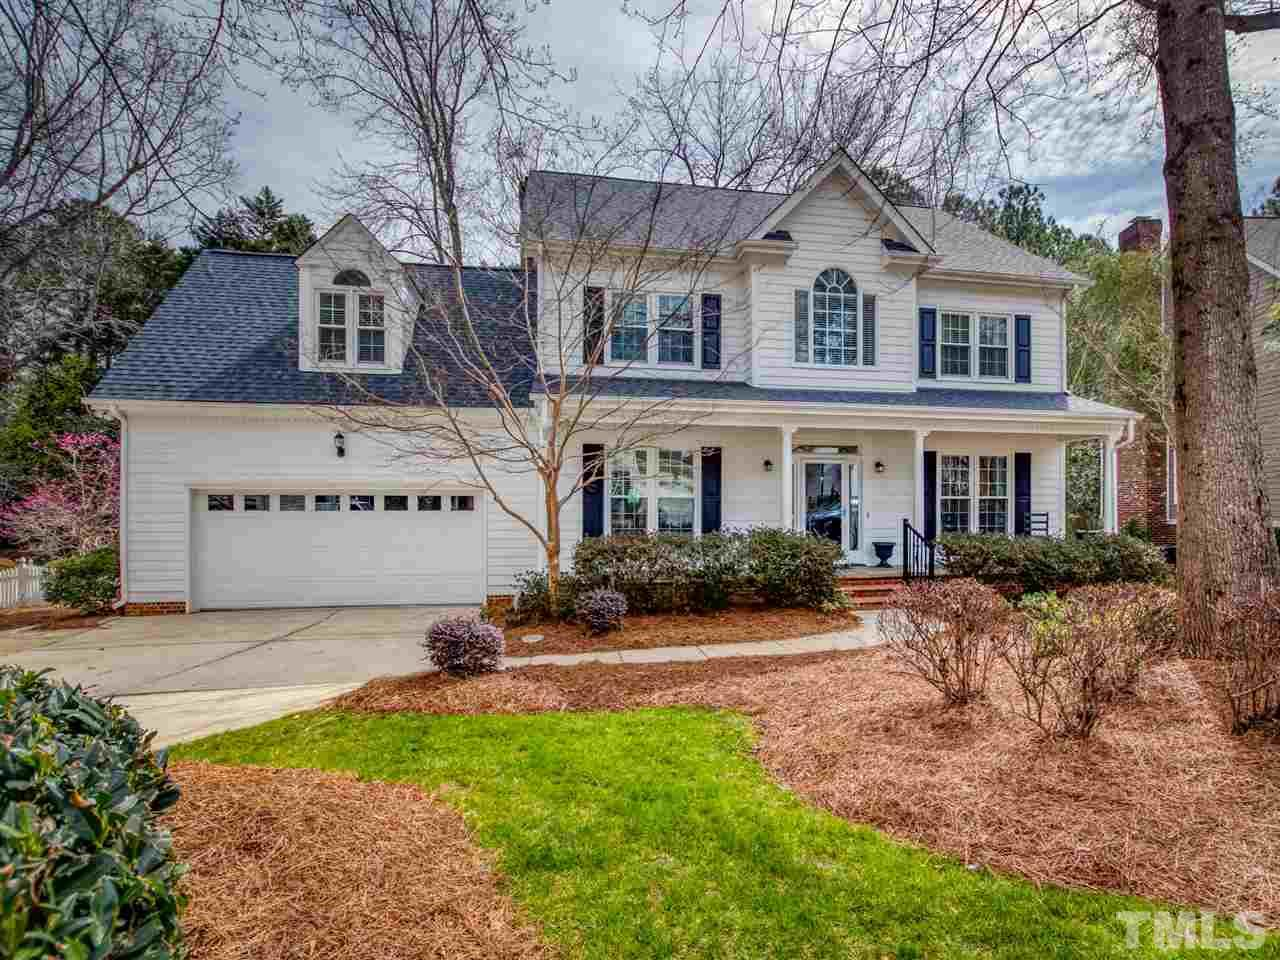 A Beautiful Home, lovingly maintained. New Roof & Windows 2003, New HVAC system, main floor. New Kitchen, Granite with BRAND New Stainless Steel Appliances. Hardwood floors downstairs. New Carpet, Paint & Light Fixtures. Private Office with Builtin Bookshelves, Large Family Room open to the Kitchen with Builtin Bookcases. Third floor permitted with an Au Pair Suite or Two Bedrooms full bathroom. Large Bonus Room on  2nd floor Backyard features a lovely pond and fountain and landscaped to enjoy outdoors.